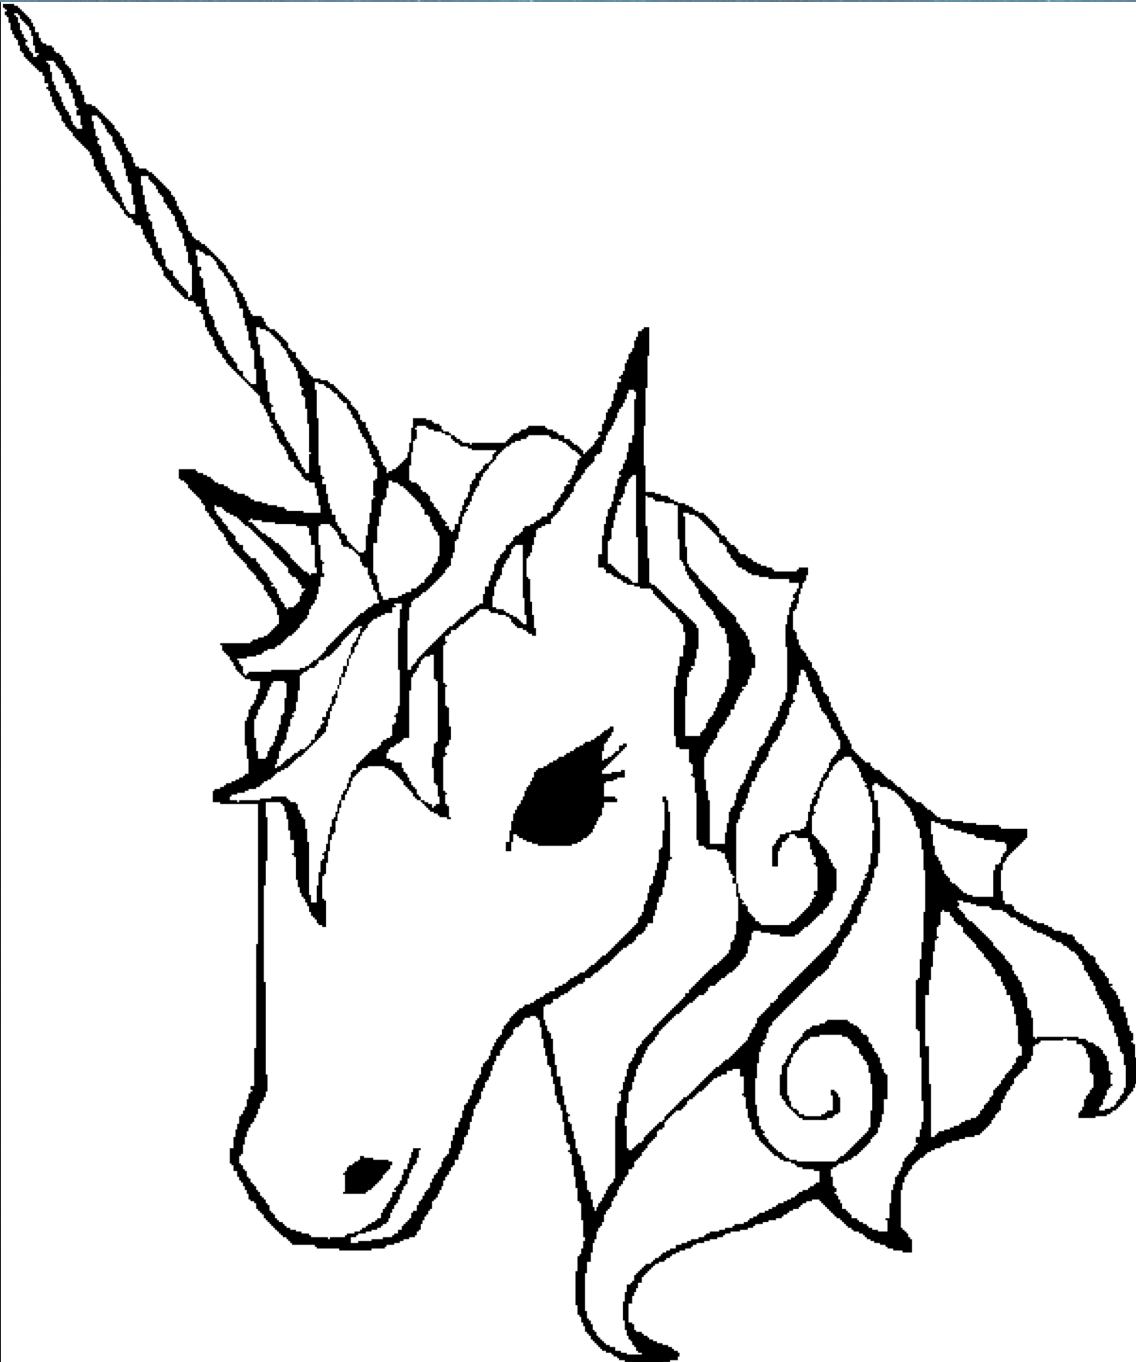 Unicorn Coloring Page Coloring Book Unicorn Pictures To Color Unicorn Coloring Pages Unicorn Pictures